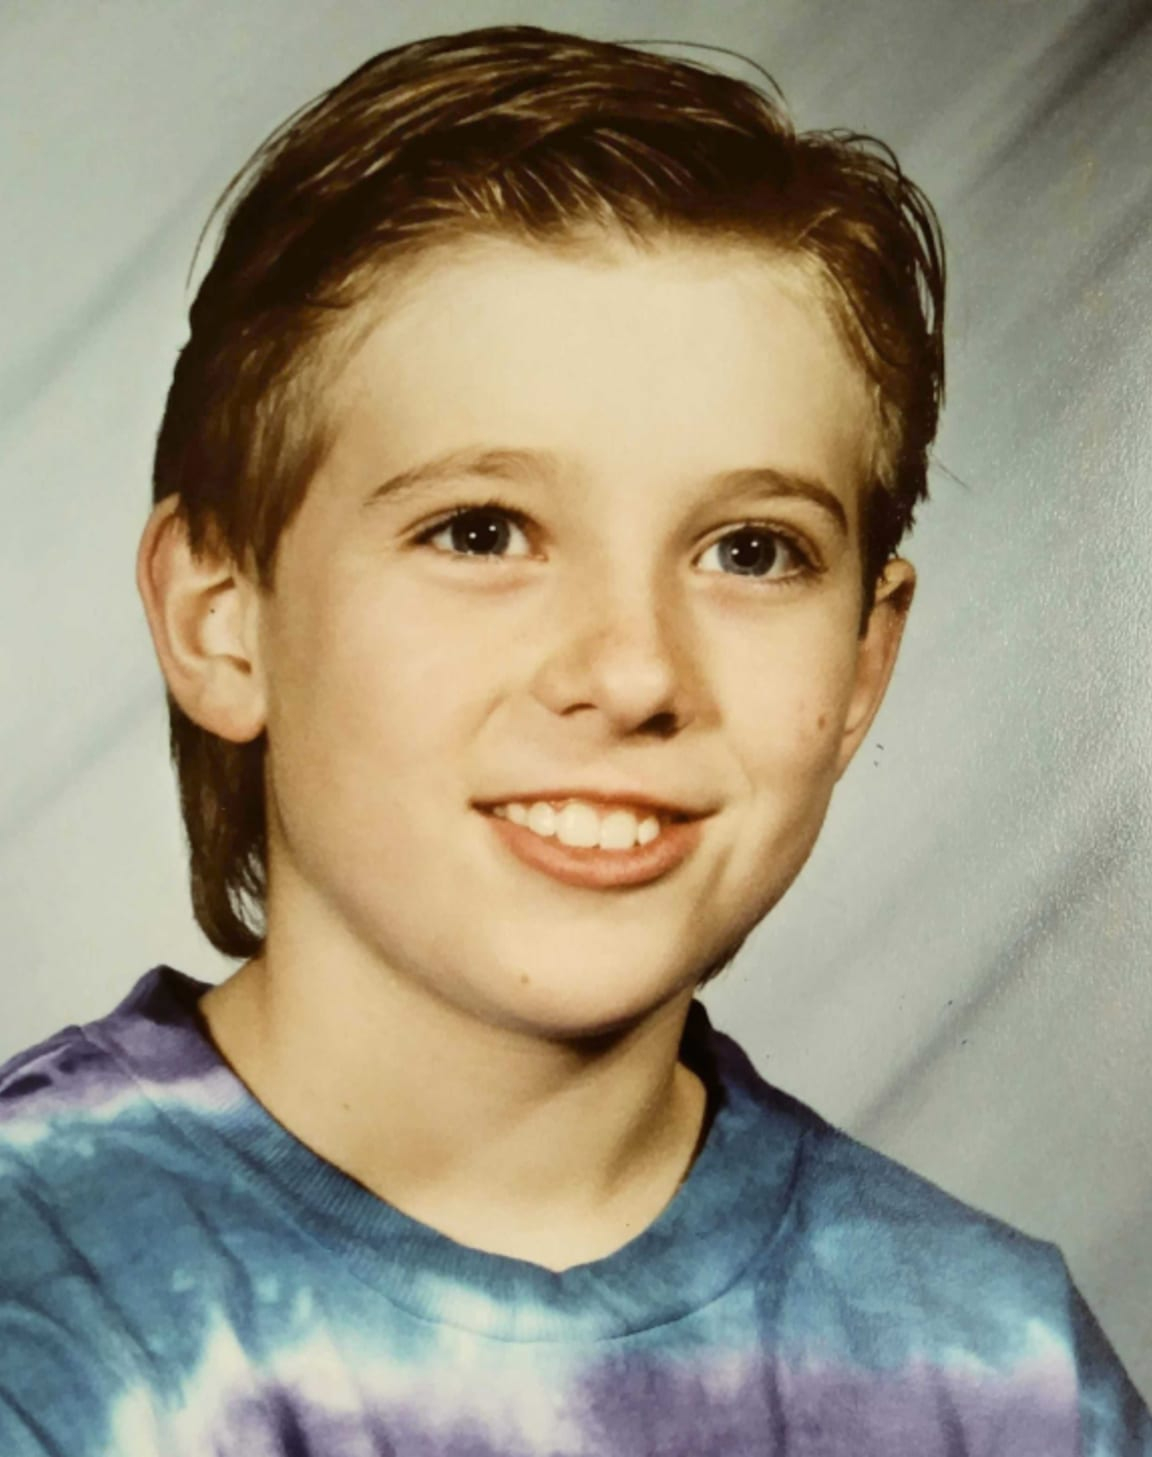 Andrew as a kid